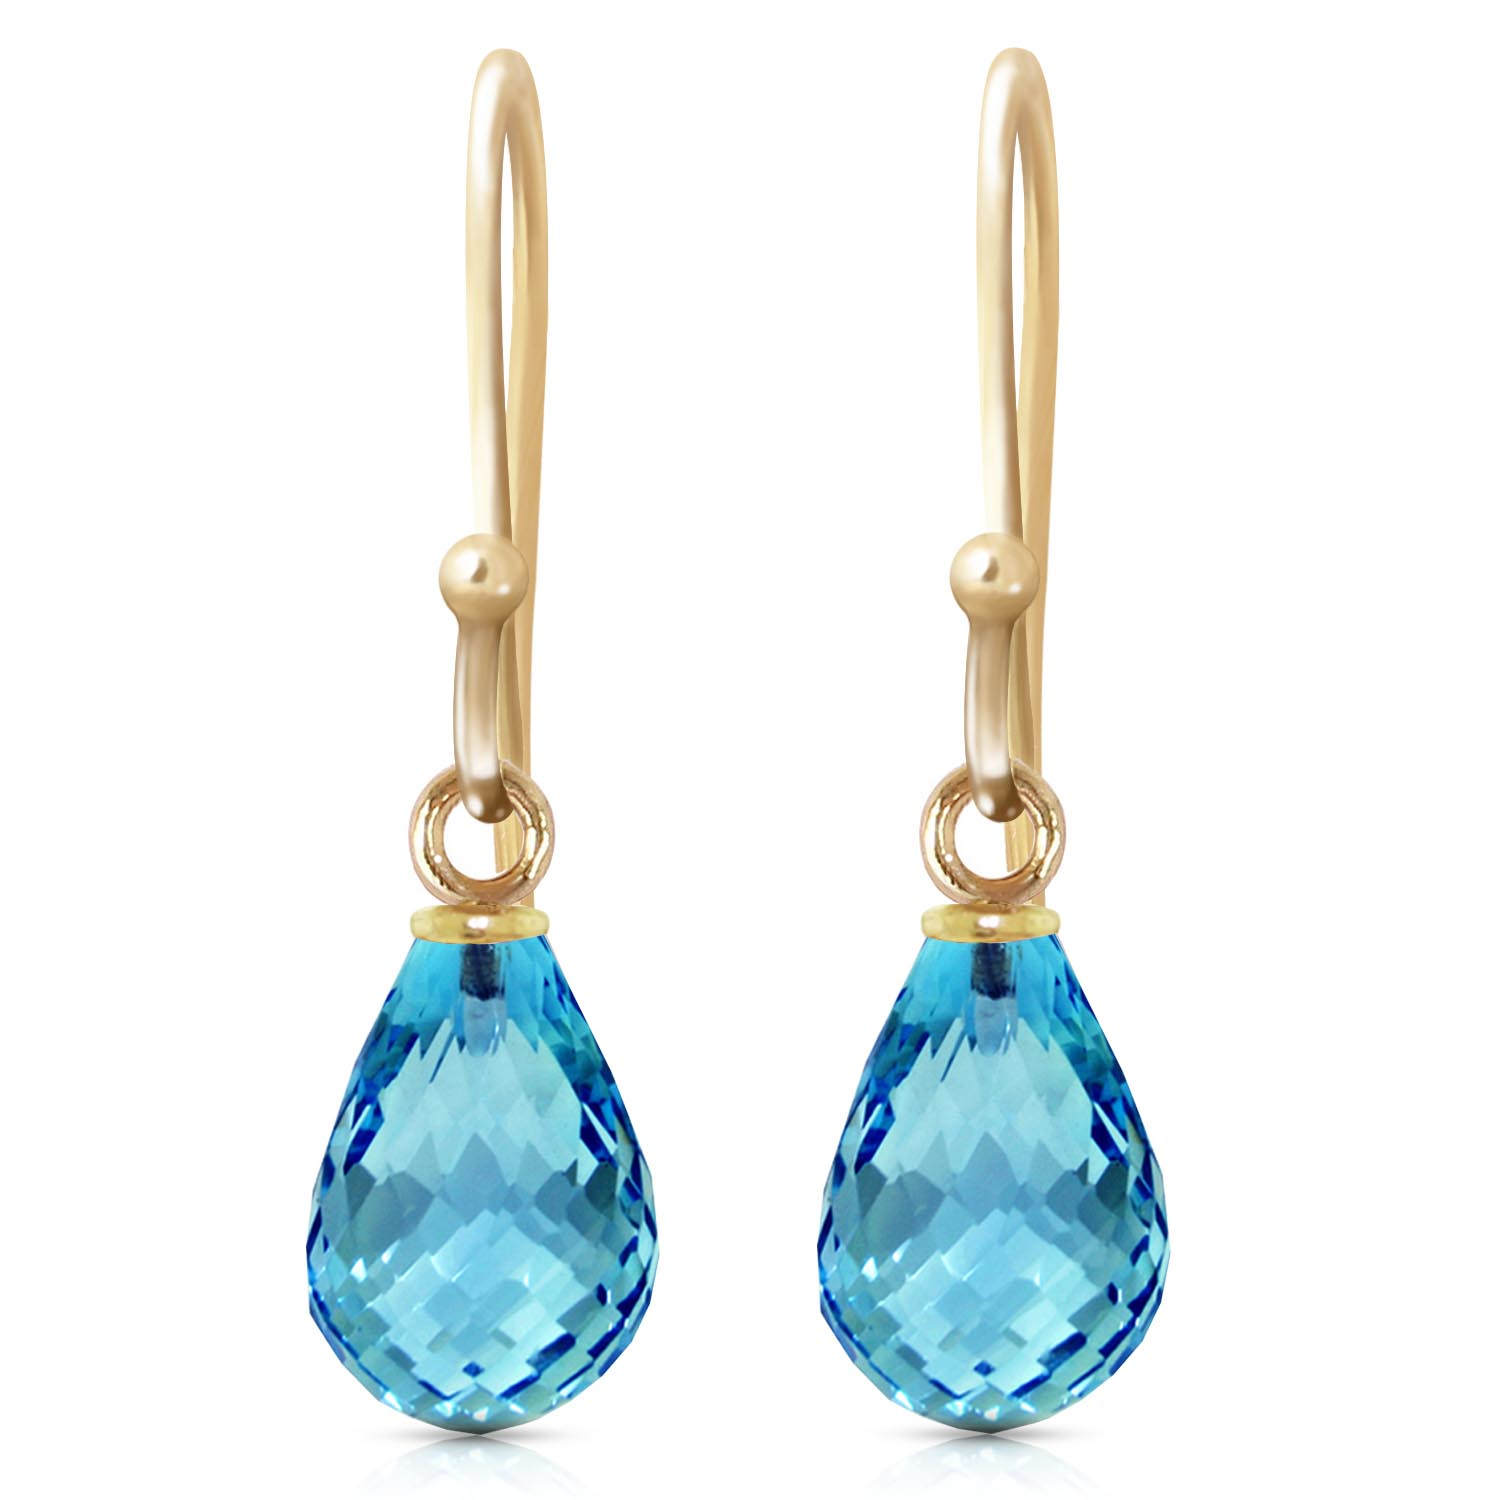 Blue Topaz Zeal Drop Earrings 2.7 ctw in 9ct Gold